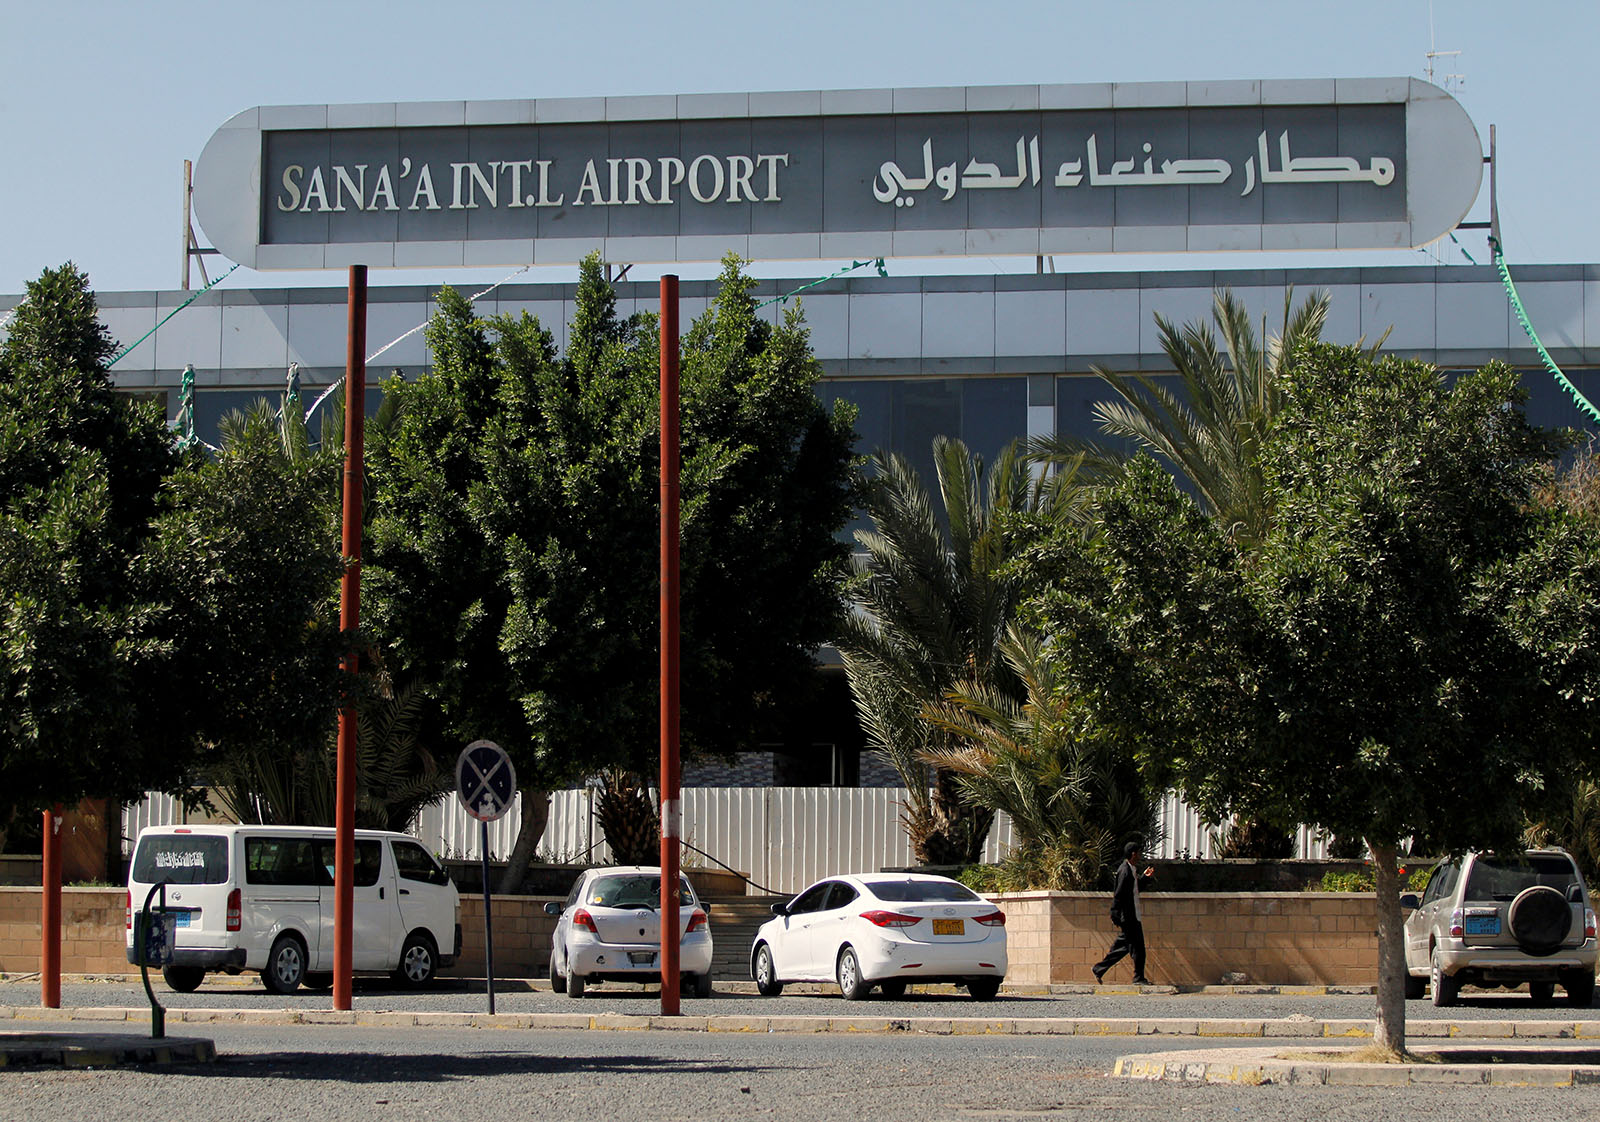 Sana'a airport has been closed since August 2016